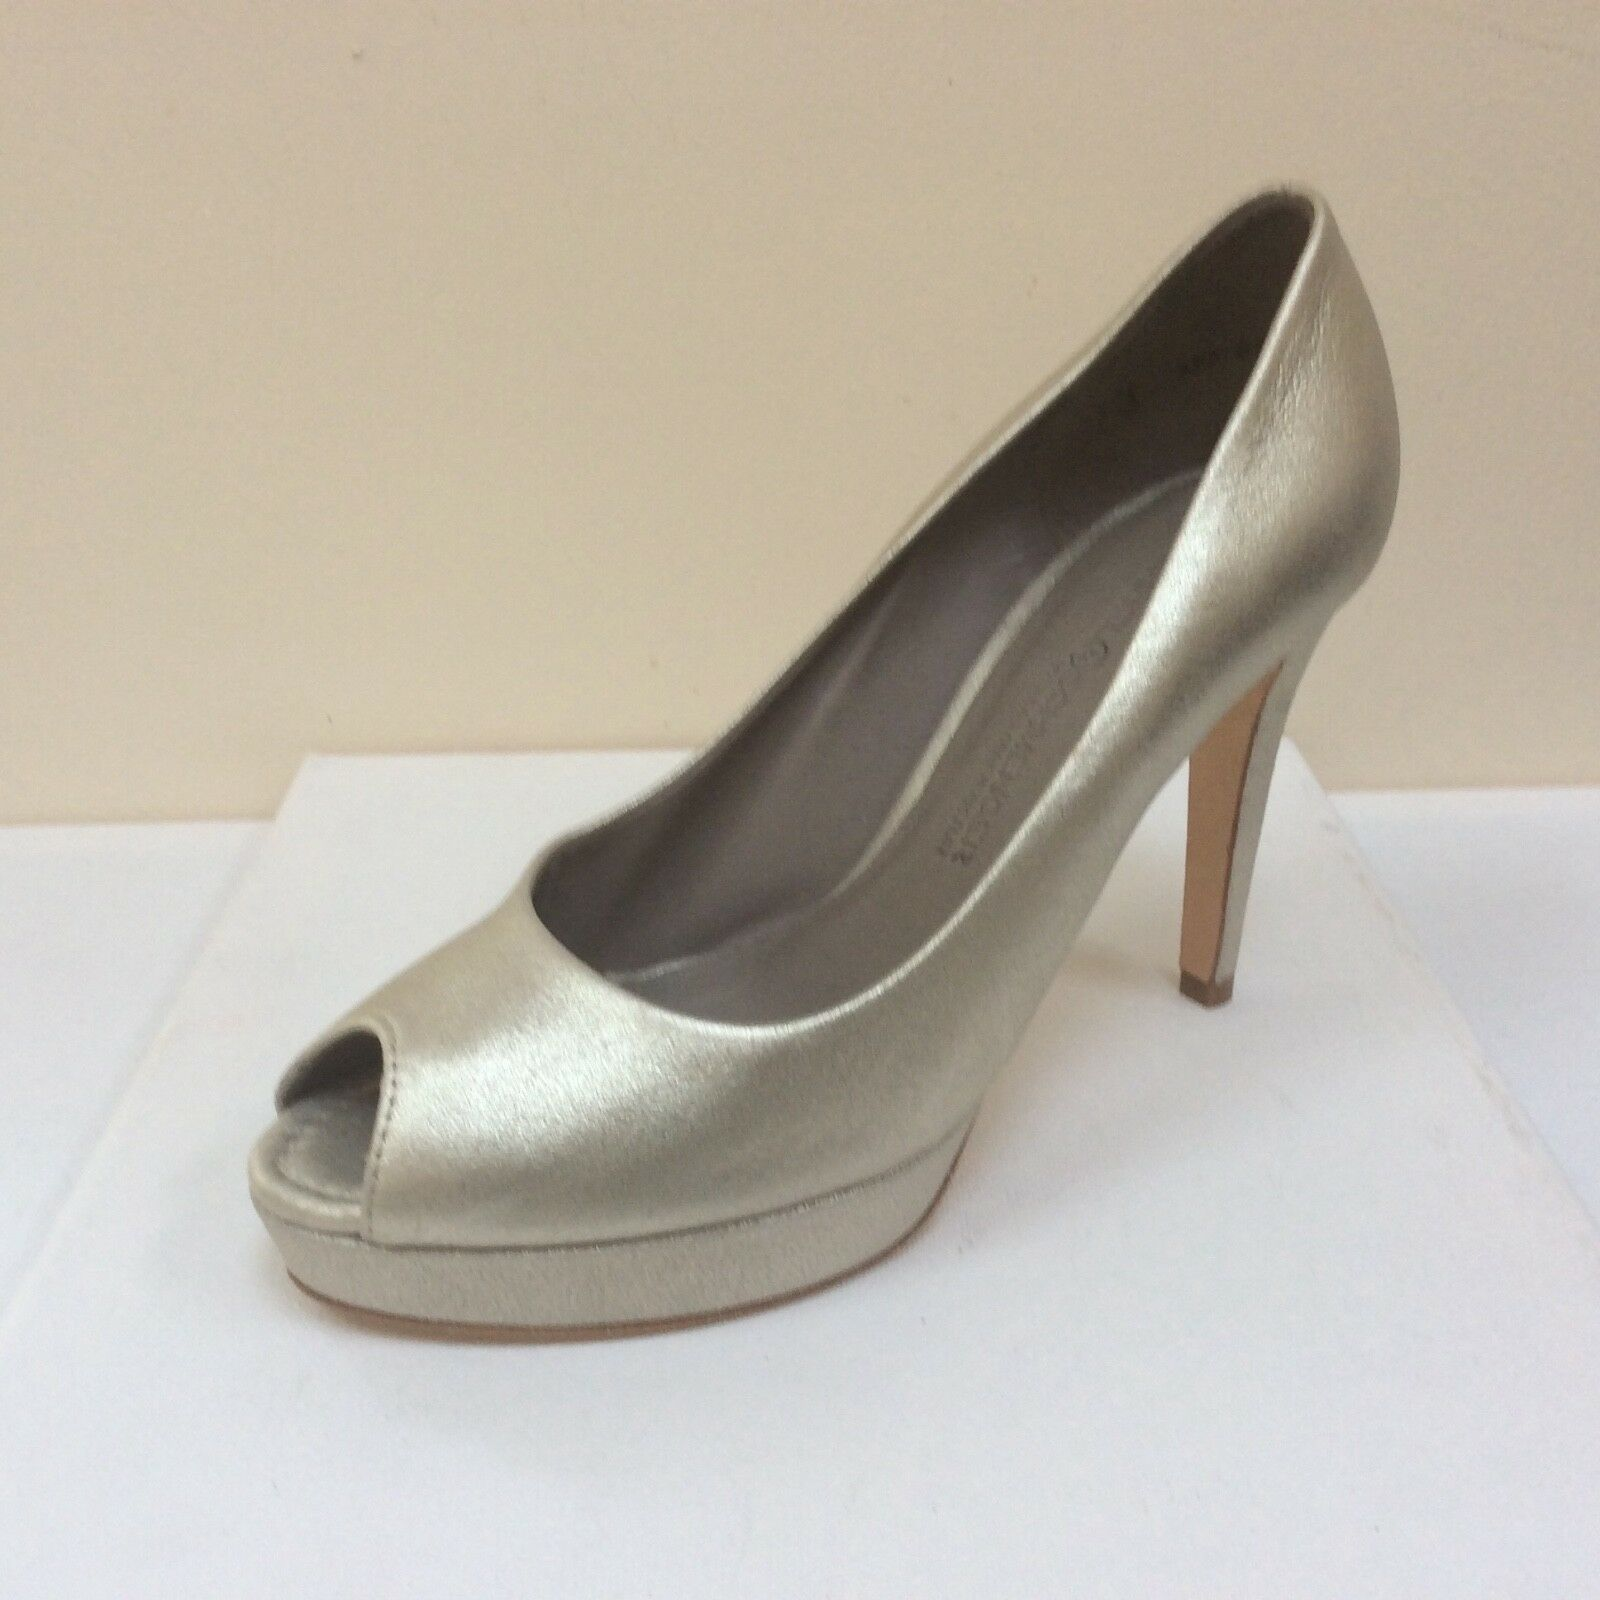 K&S Gia gold Leder peep toe platform courts, UK 3/EU 36,   BNWB